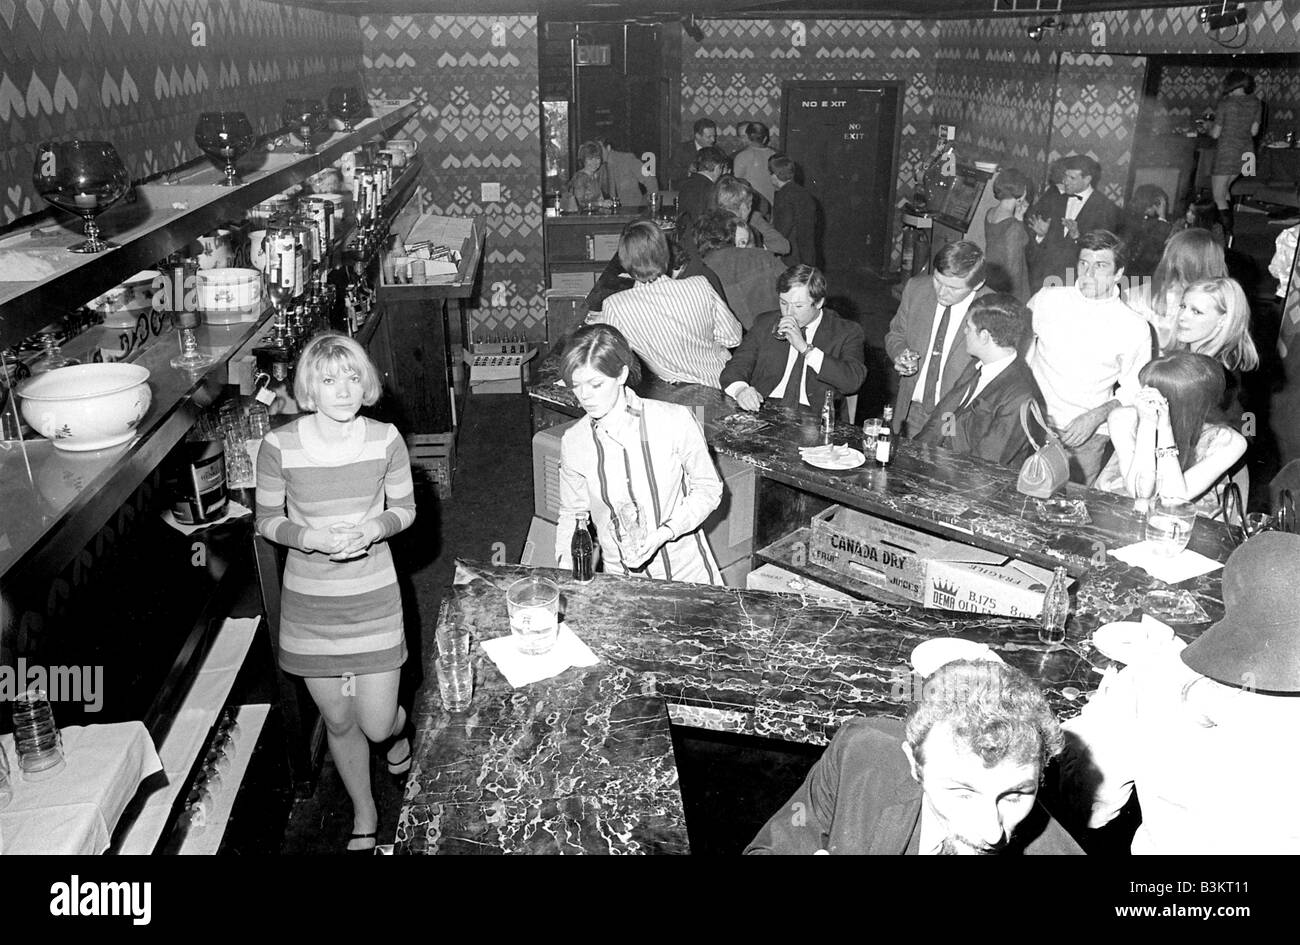 THE SPEAKEASY Pop music orientated club in 60s London - Stock Image